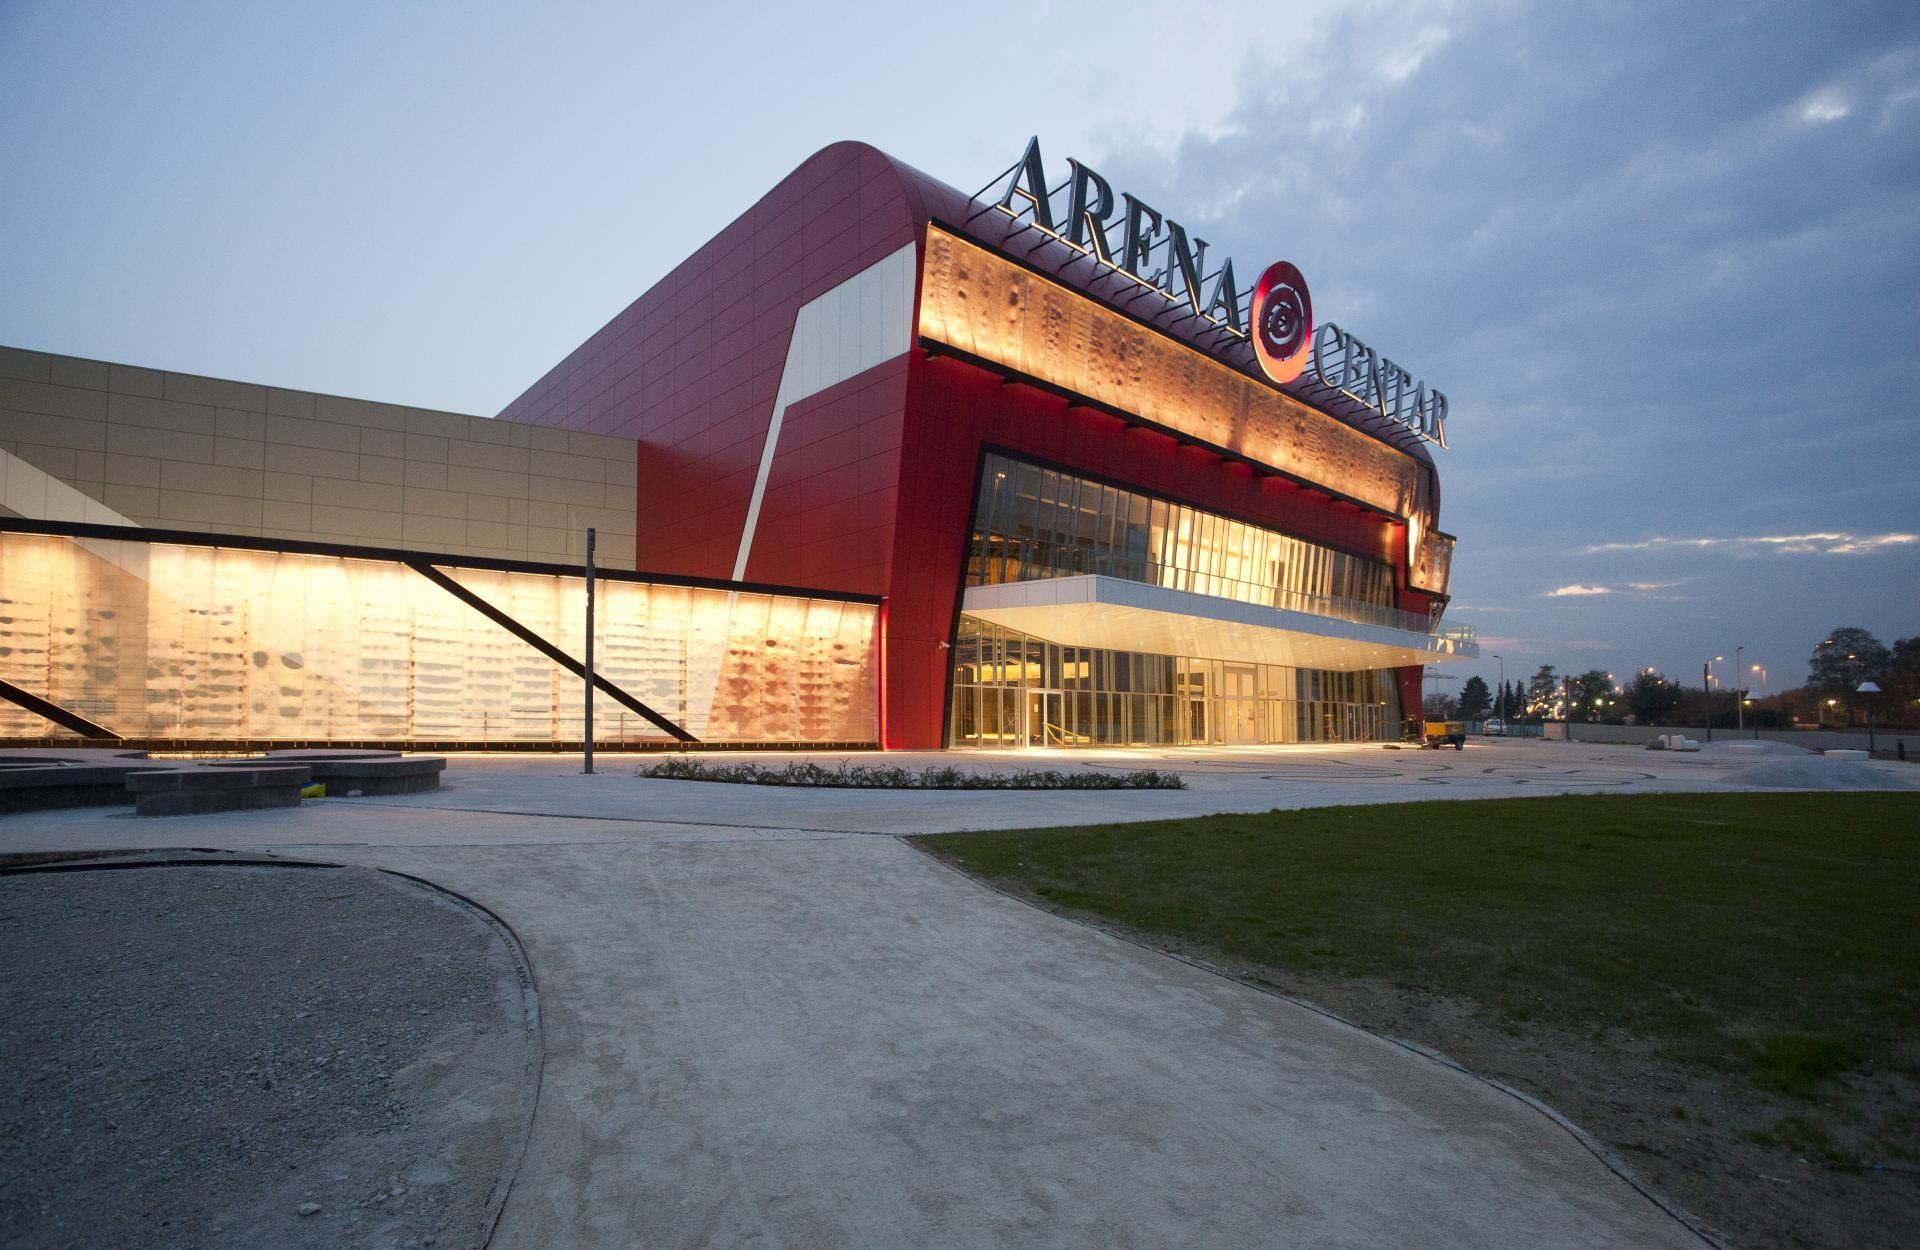 Upi 2m Project Arena Centar Image 19 Shop Facade House Styles Commercial Center